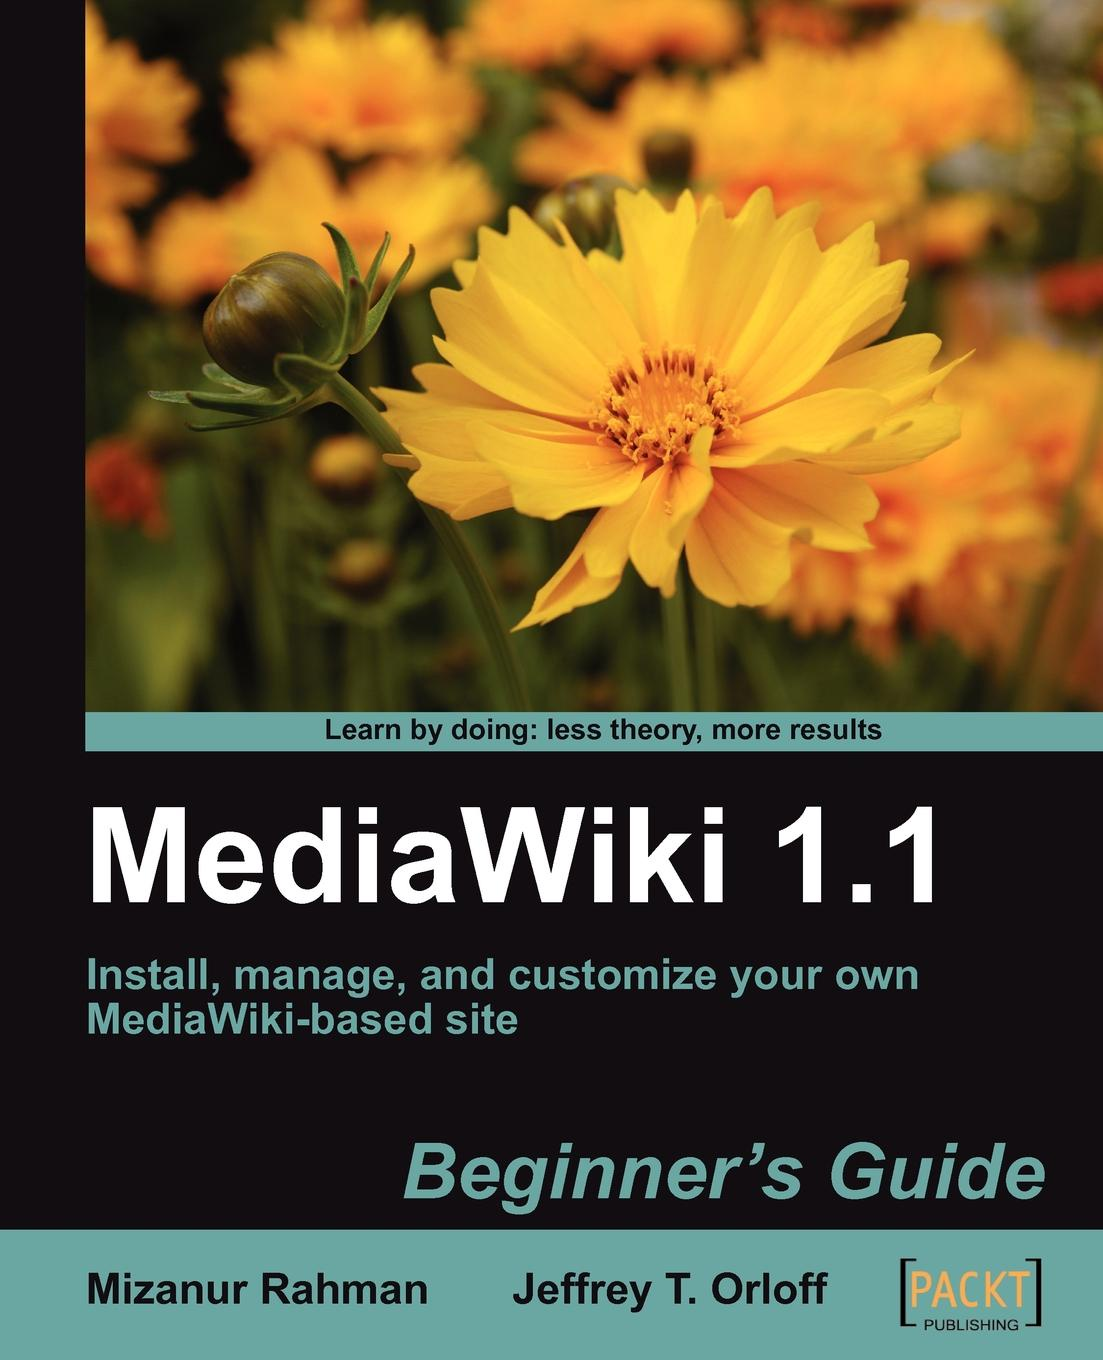 Jeff Orloff Mediawiki 1.1 Beginner's Guide цена